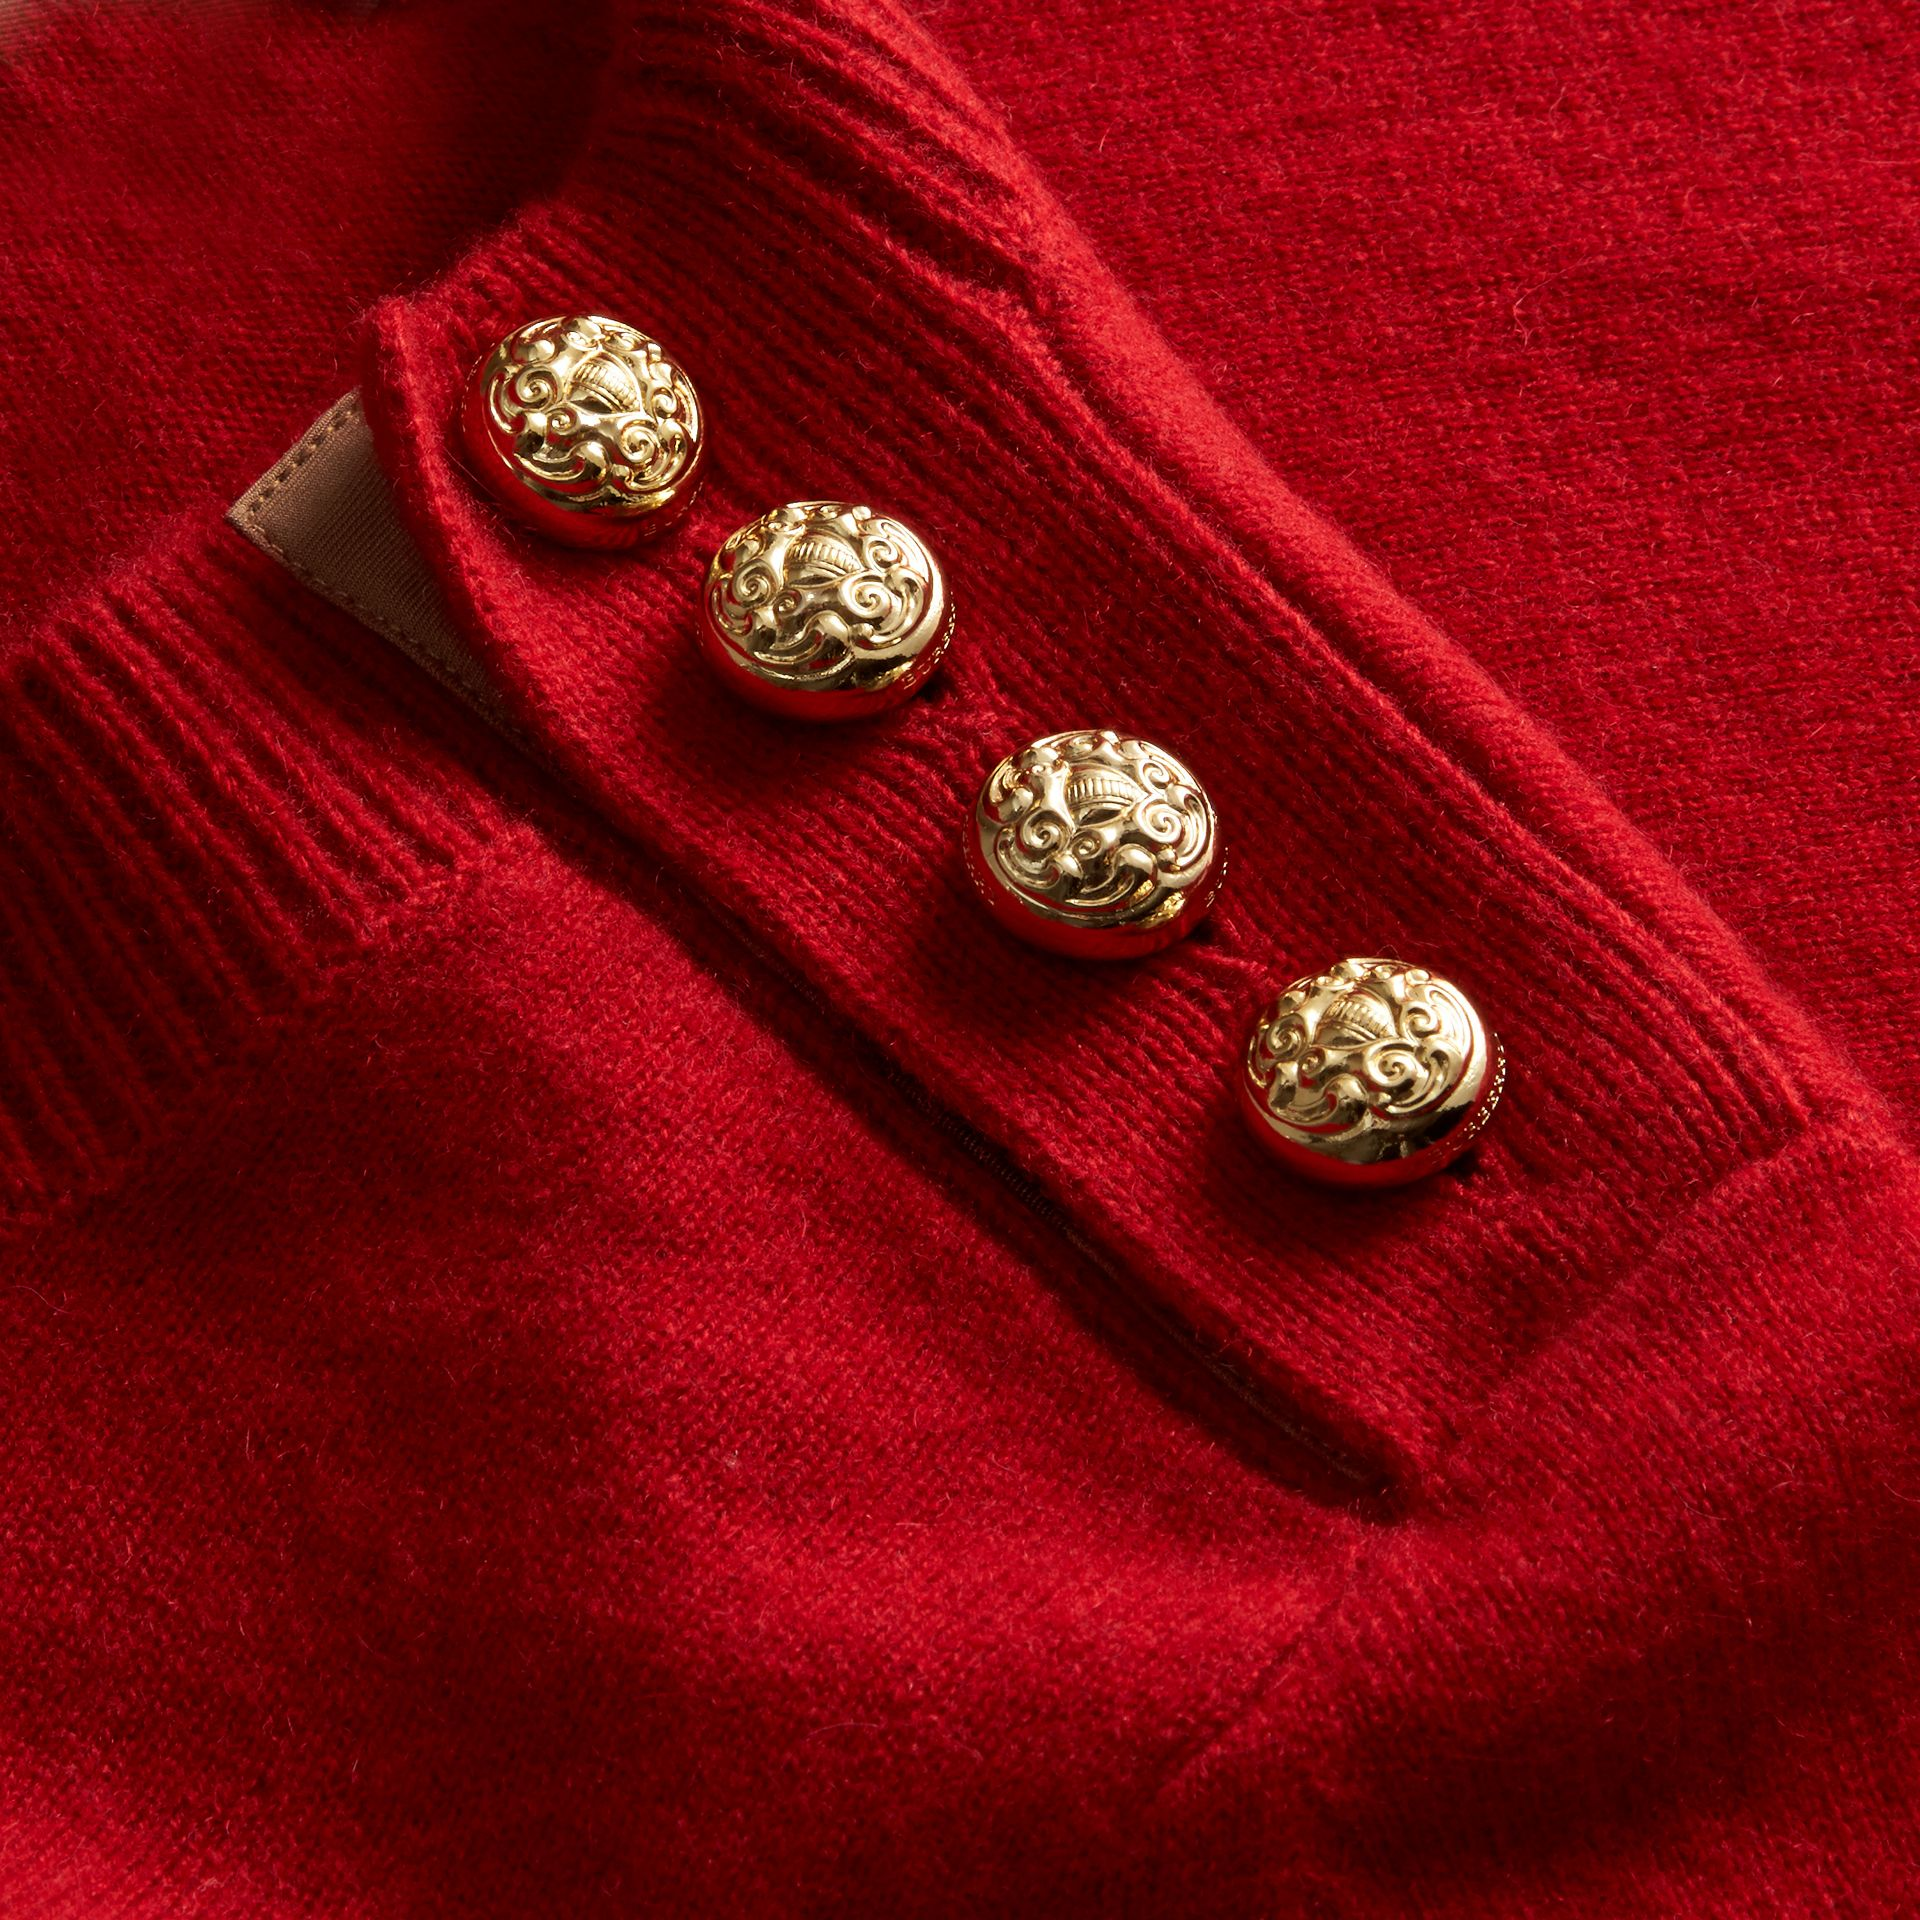 Parade red Cashmere Sweater with Crested Buttons Parade Red - gallery image 2